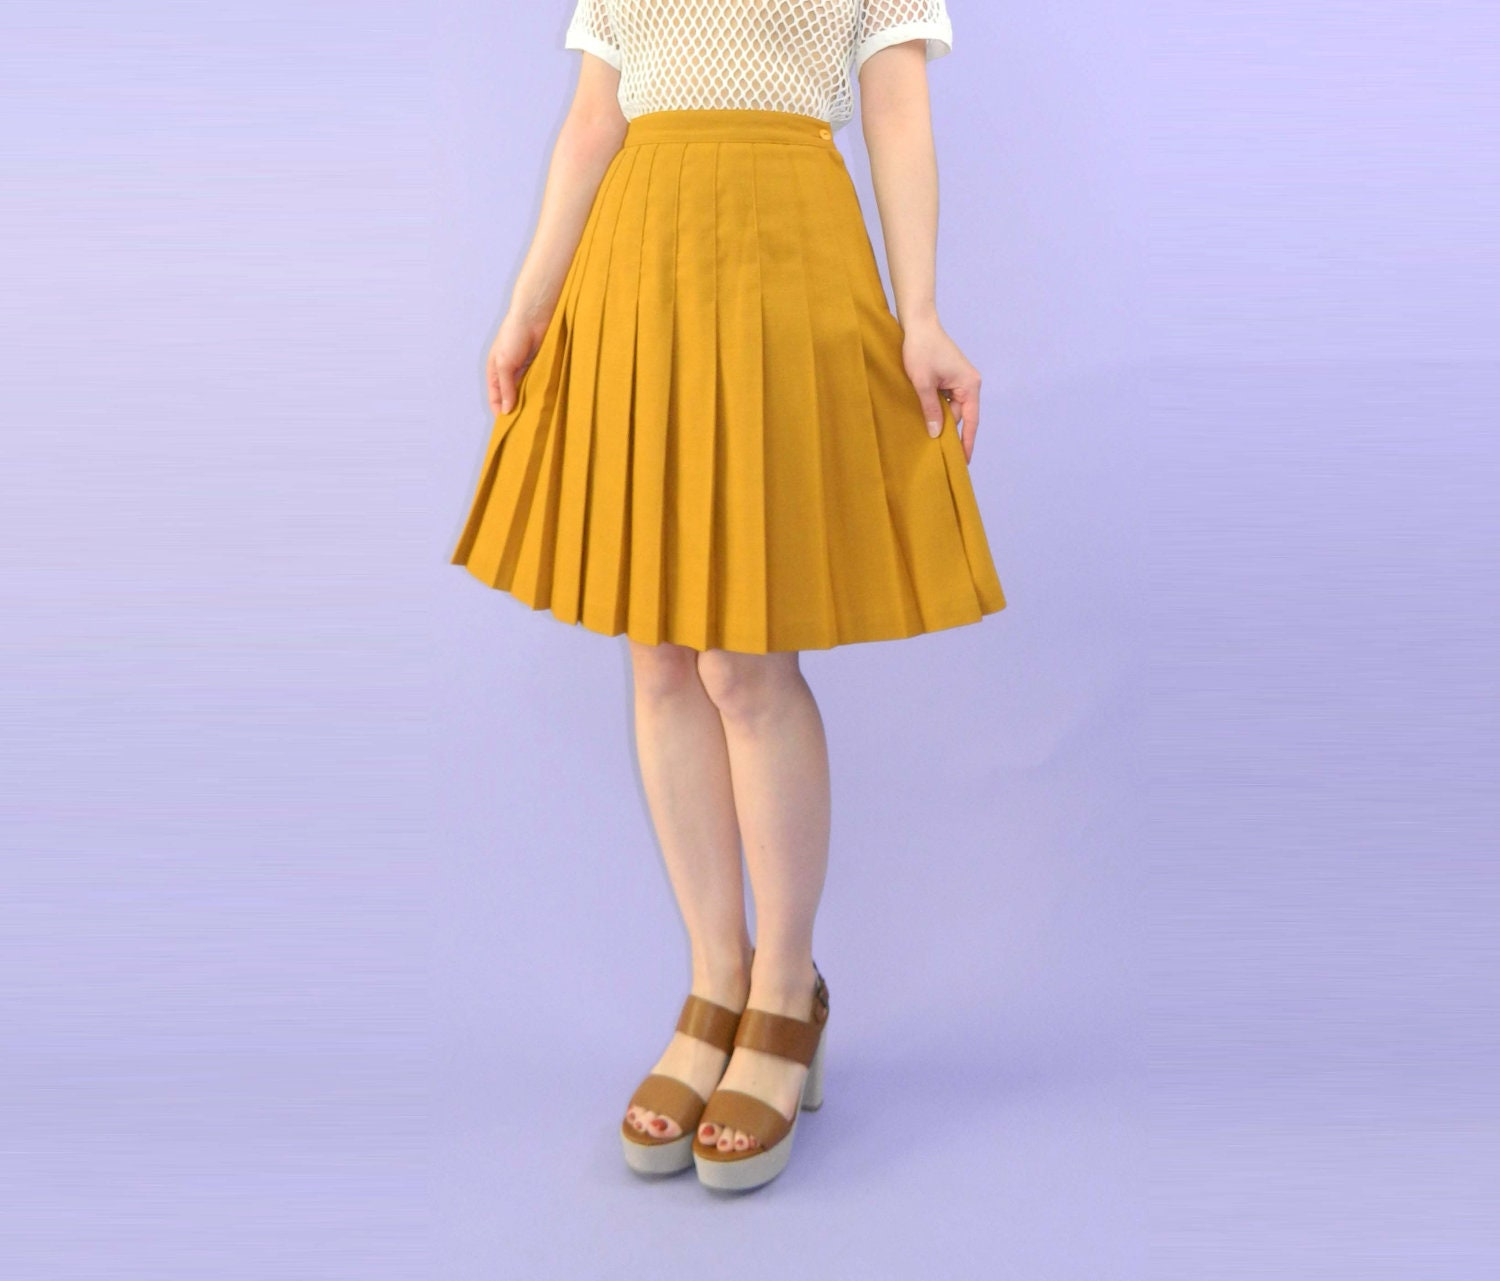 mustard yellow pleated skirt vintage s m by wearitwellvintage